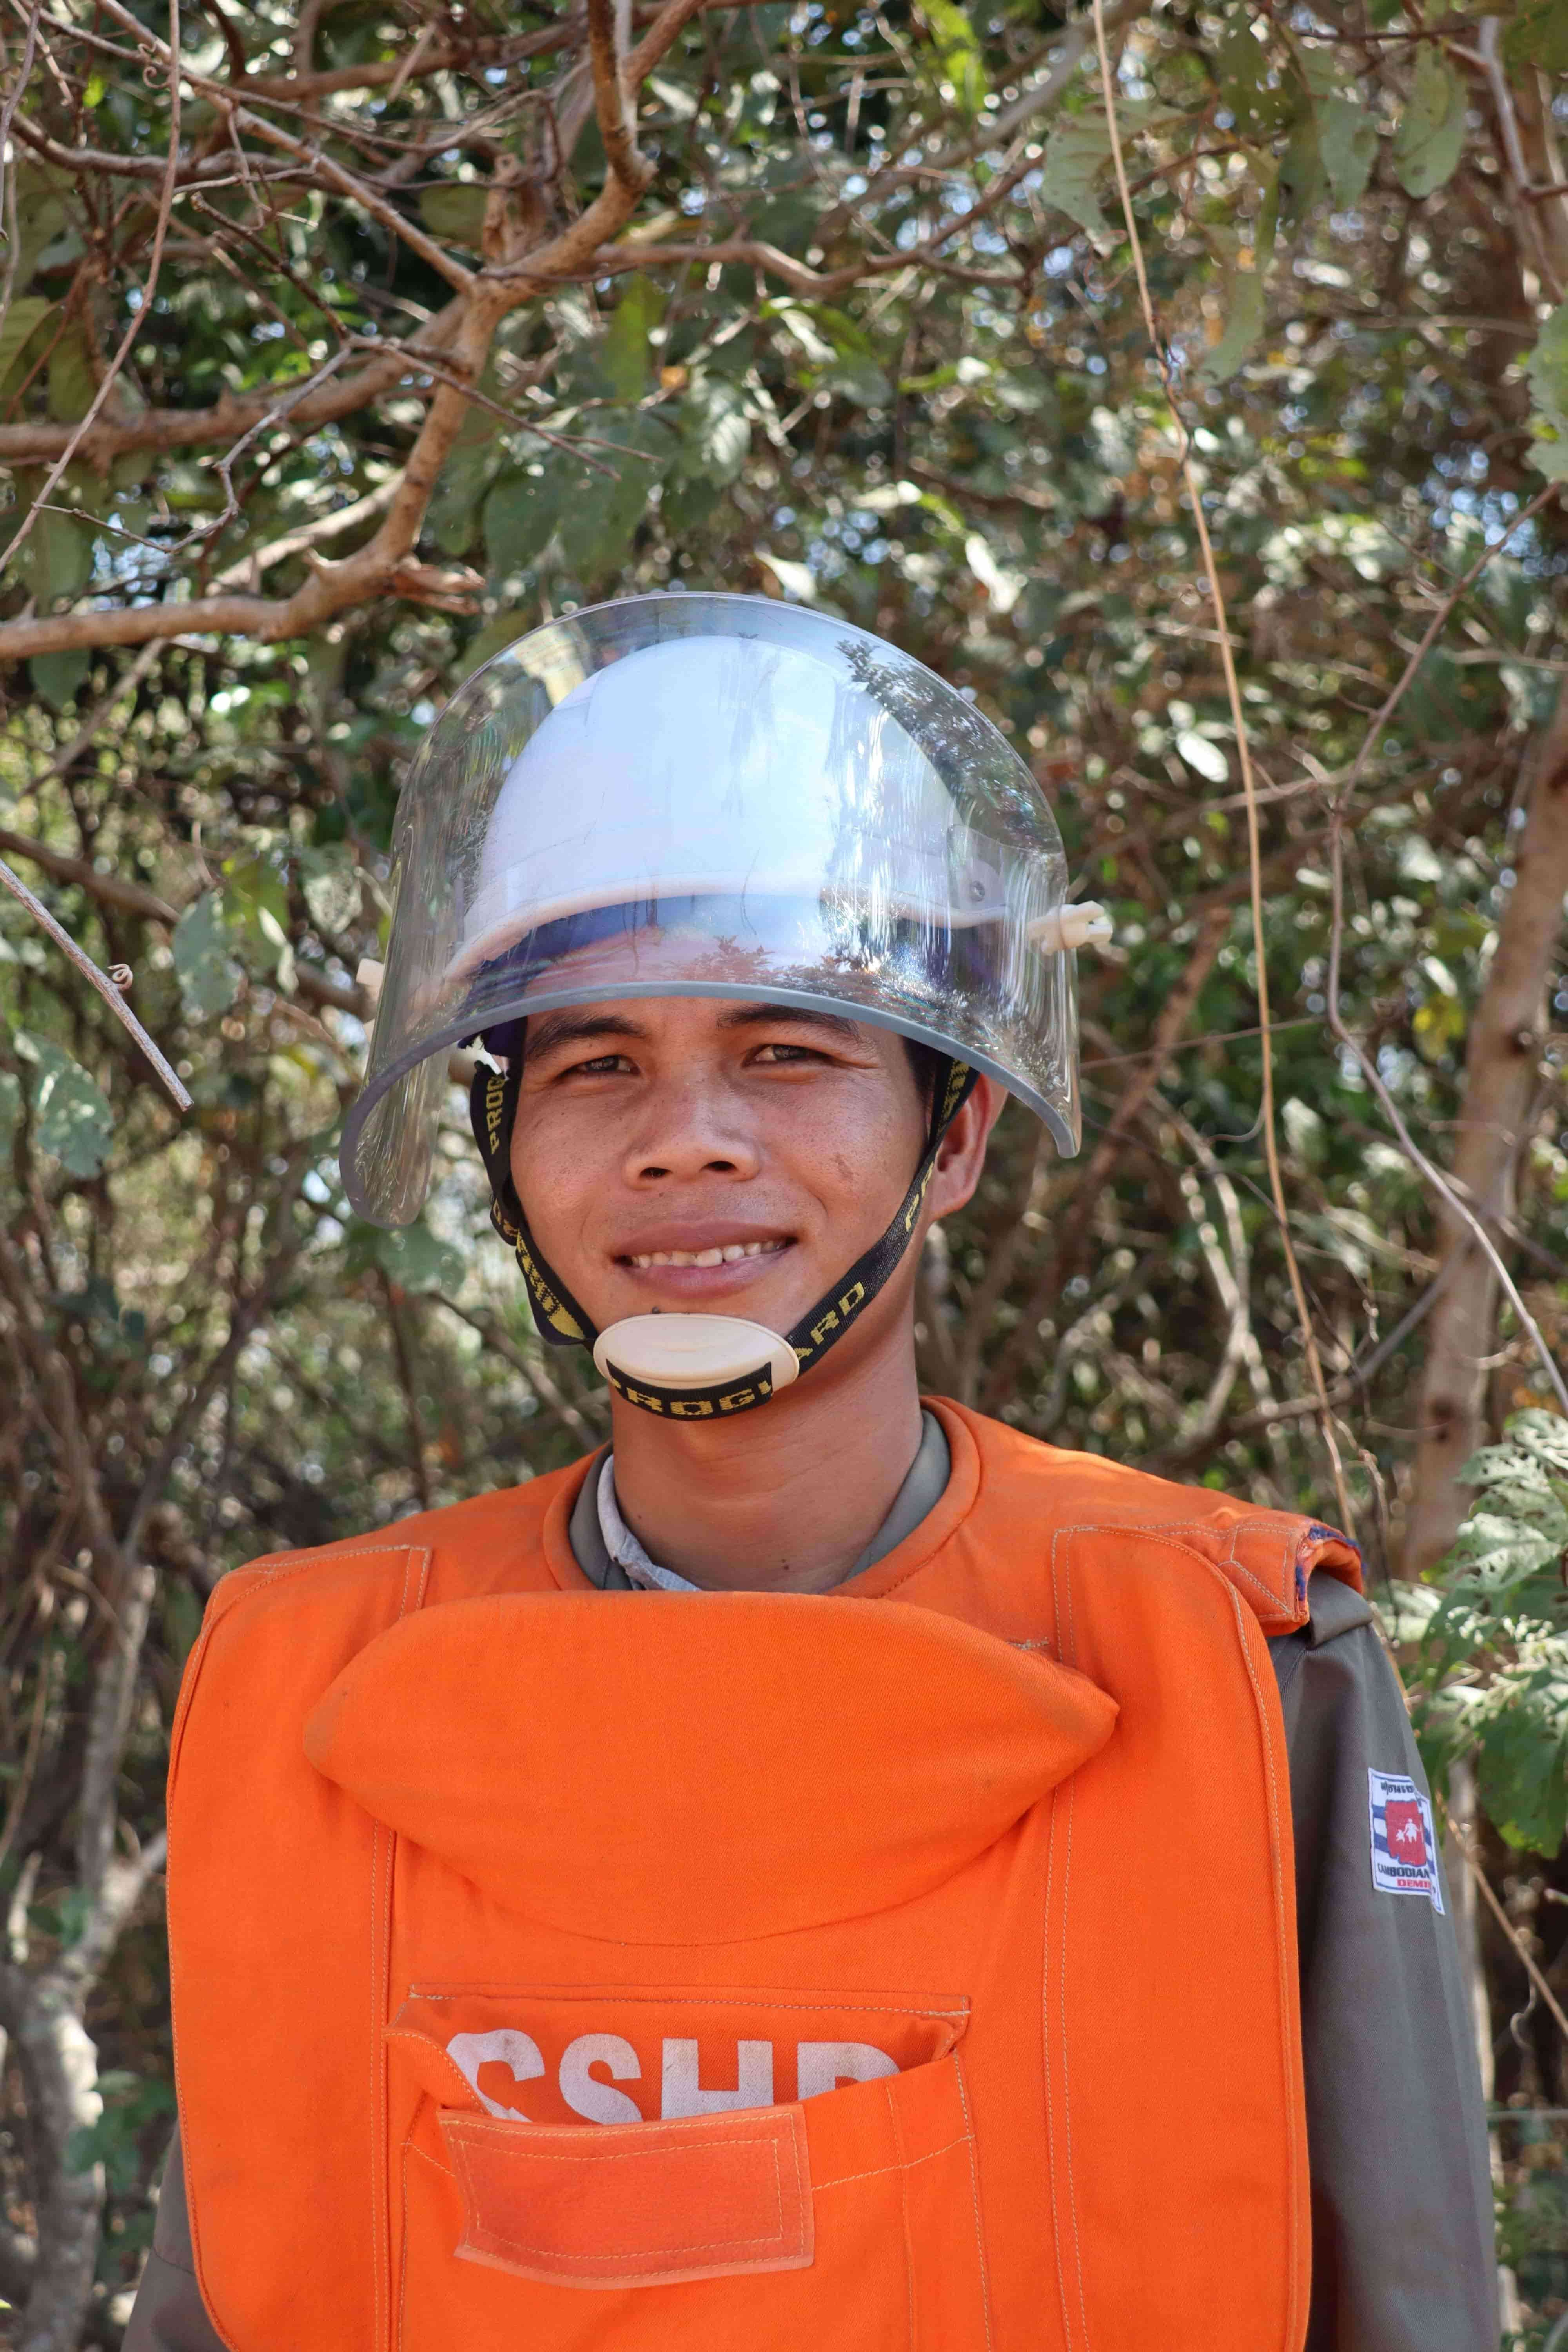 More safety for Cambodia - through mine clearance and ordnance disposal